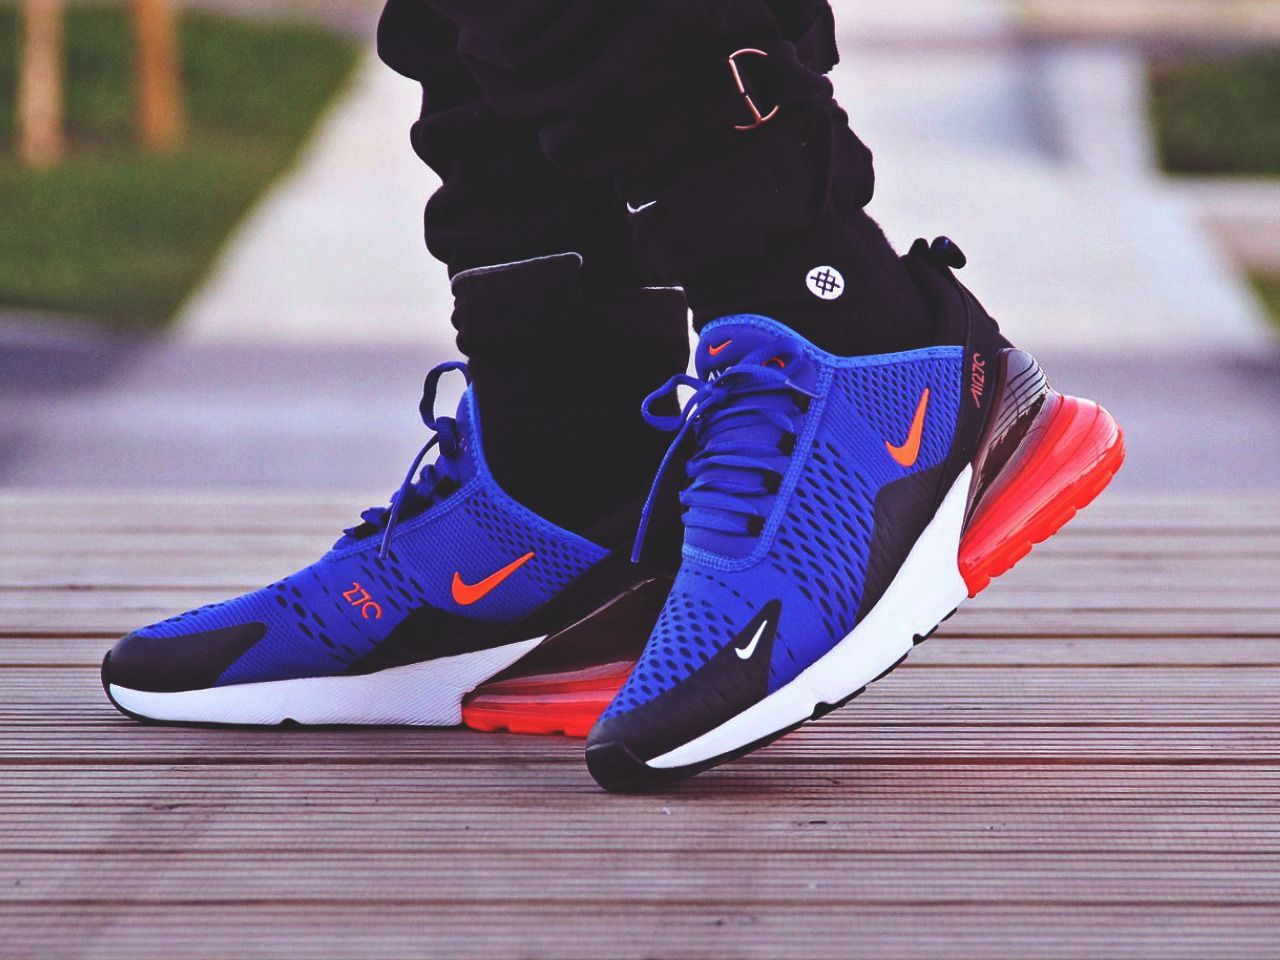 the best attitude 754d5 1a678 Nike Air Max 270 - Racer Blue - 2018 (by pedram50) Buy